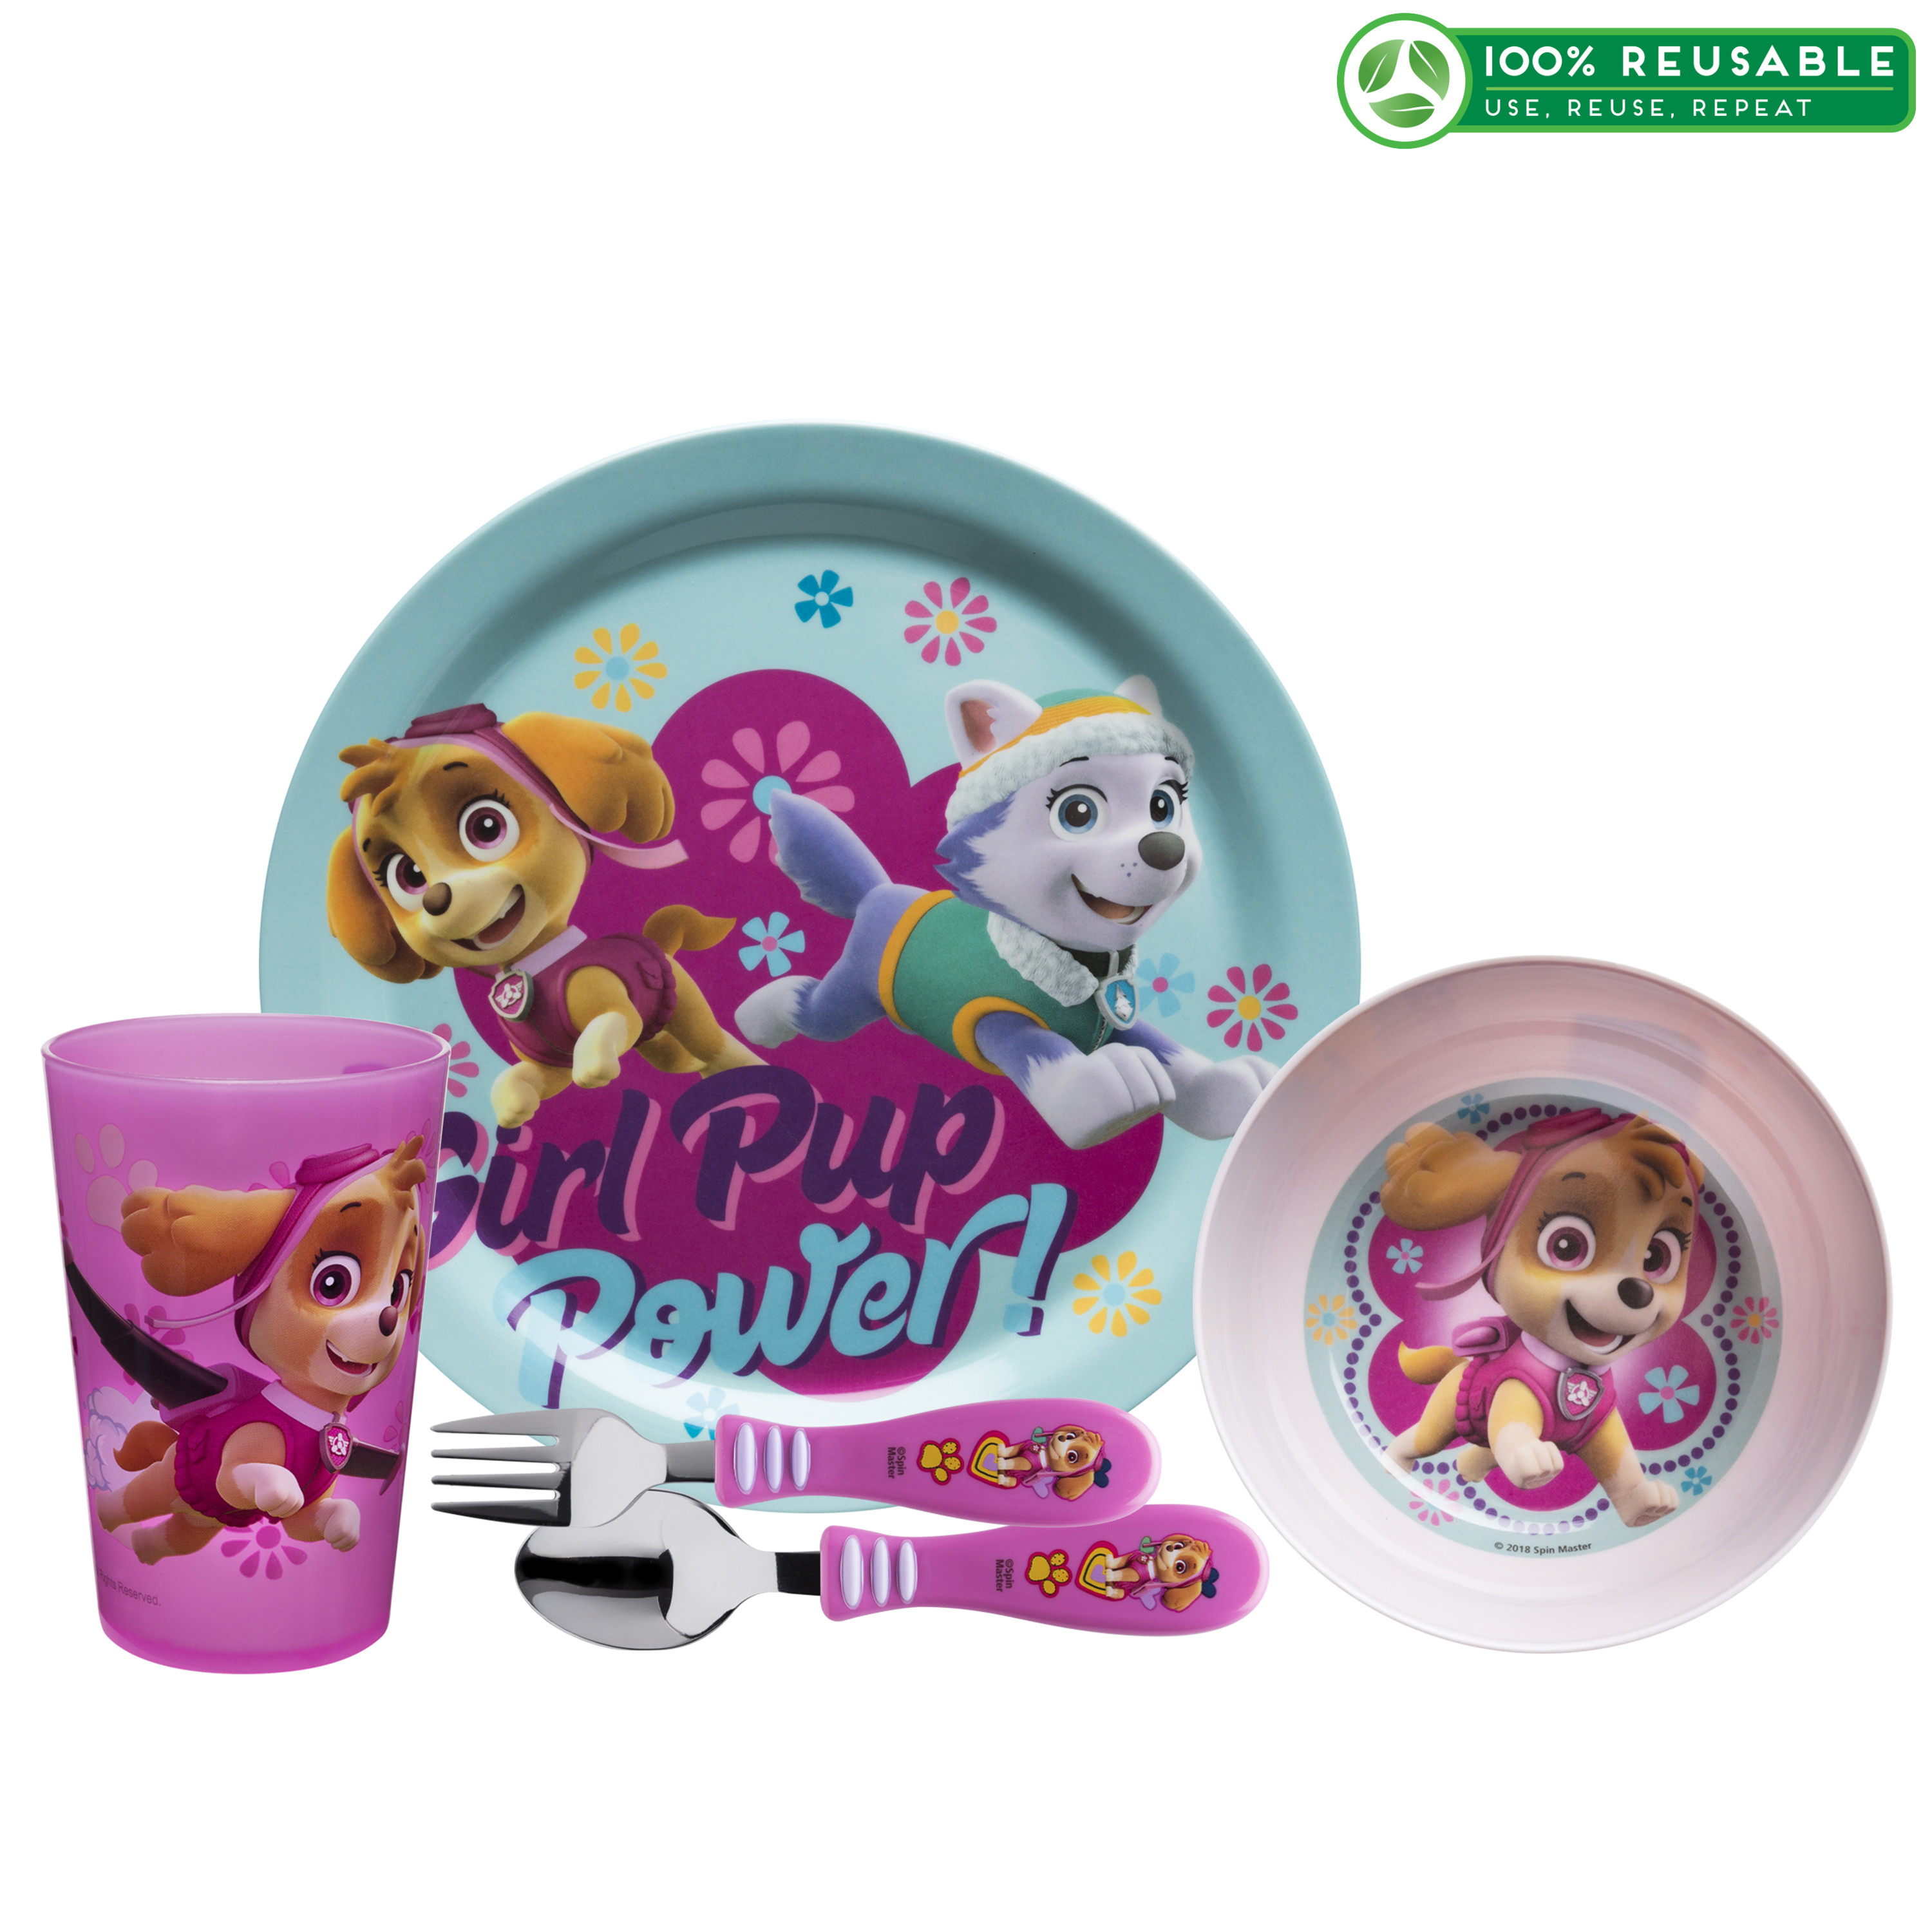 Paw Patrol Dinnerware Set, Skye & Everest, 5-piece set slideshow image 1